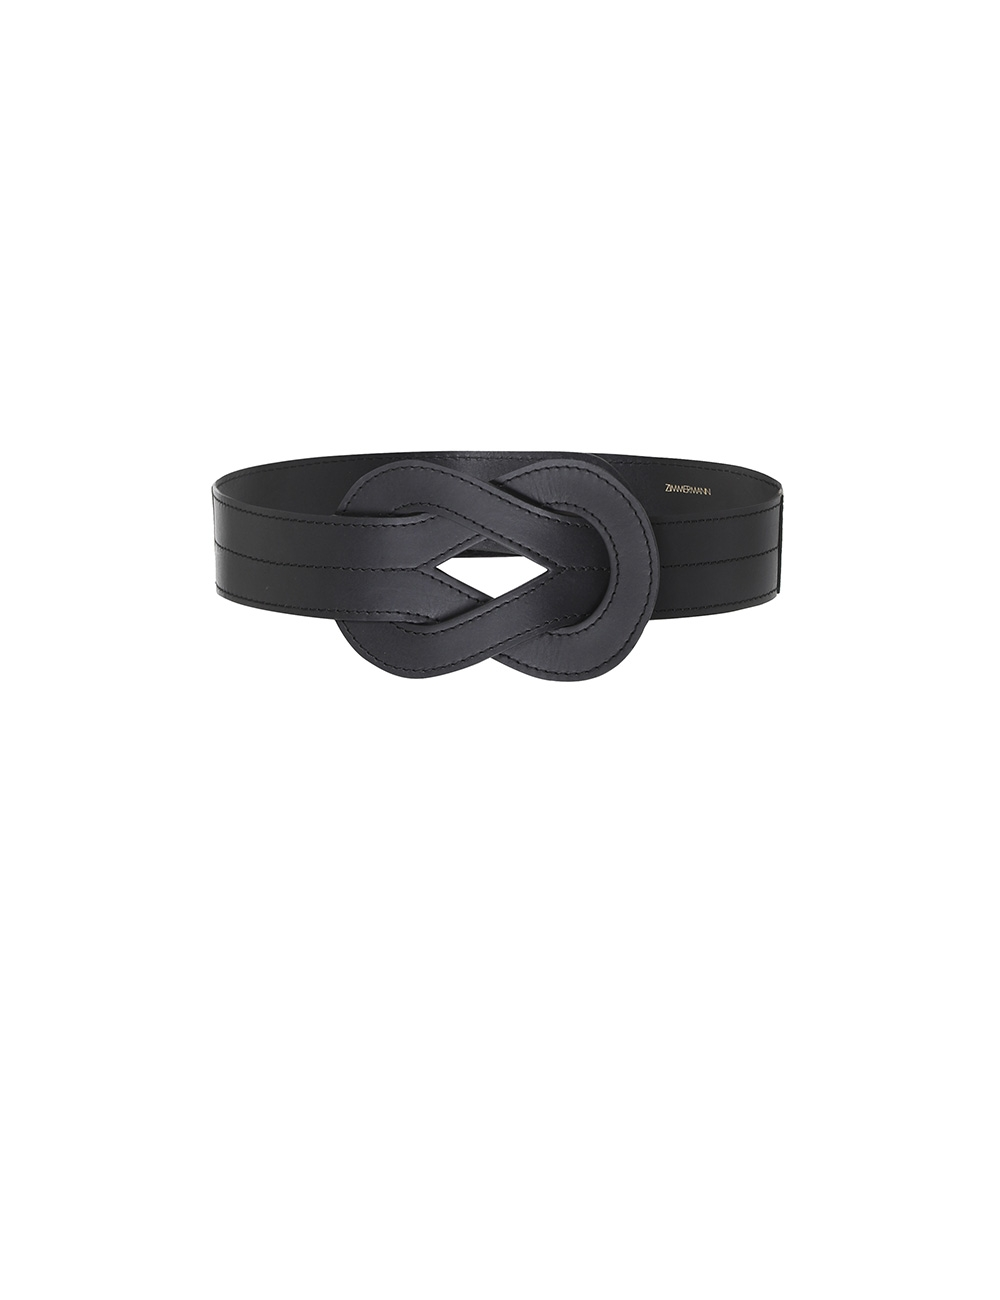 Interlocked Waist Belt